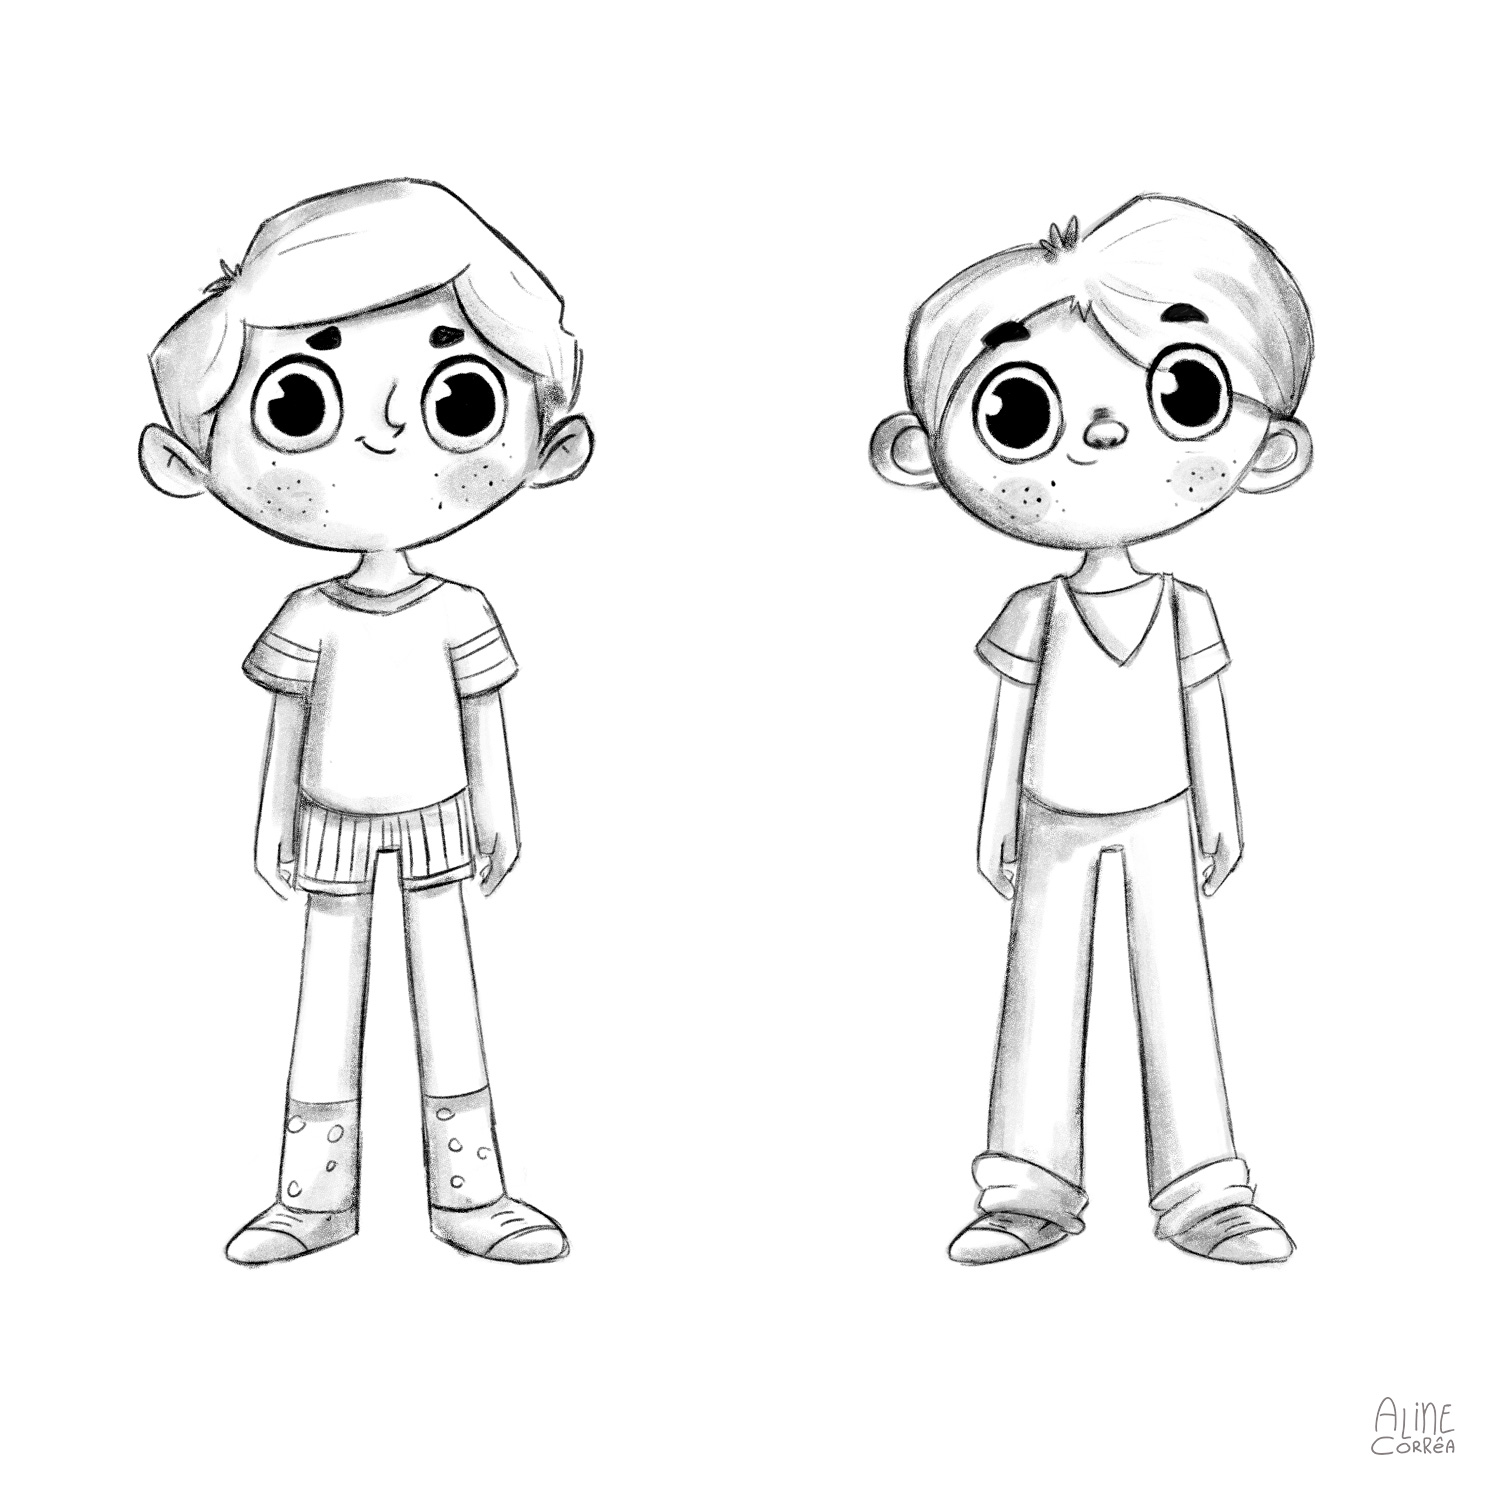 Boy Character Study for a Collaborative Children's Book Project 2